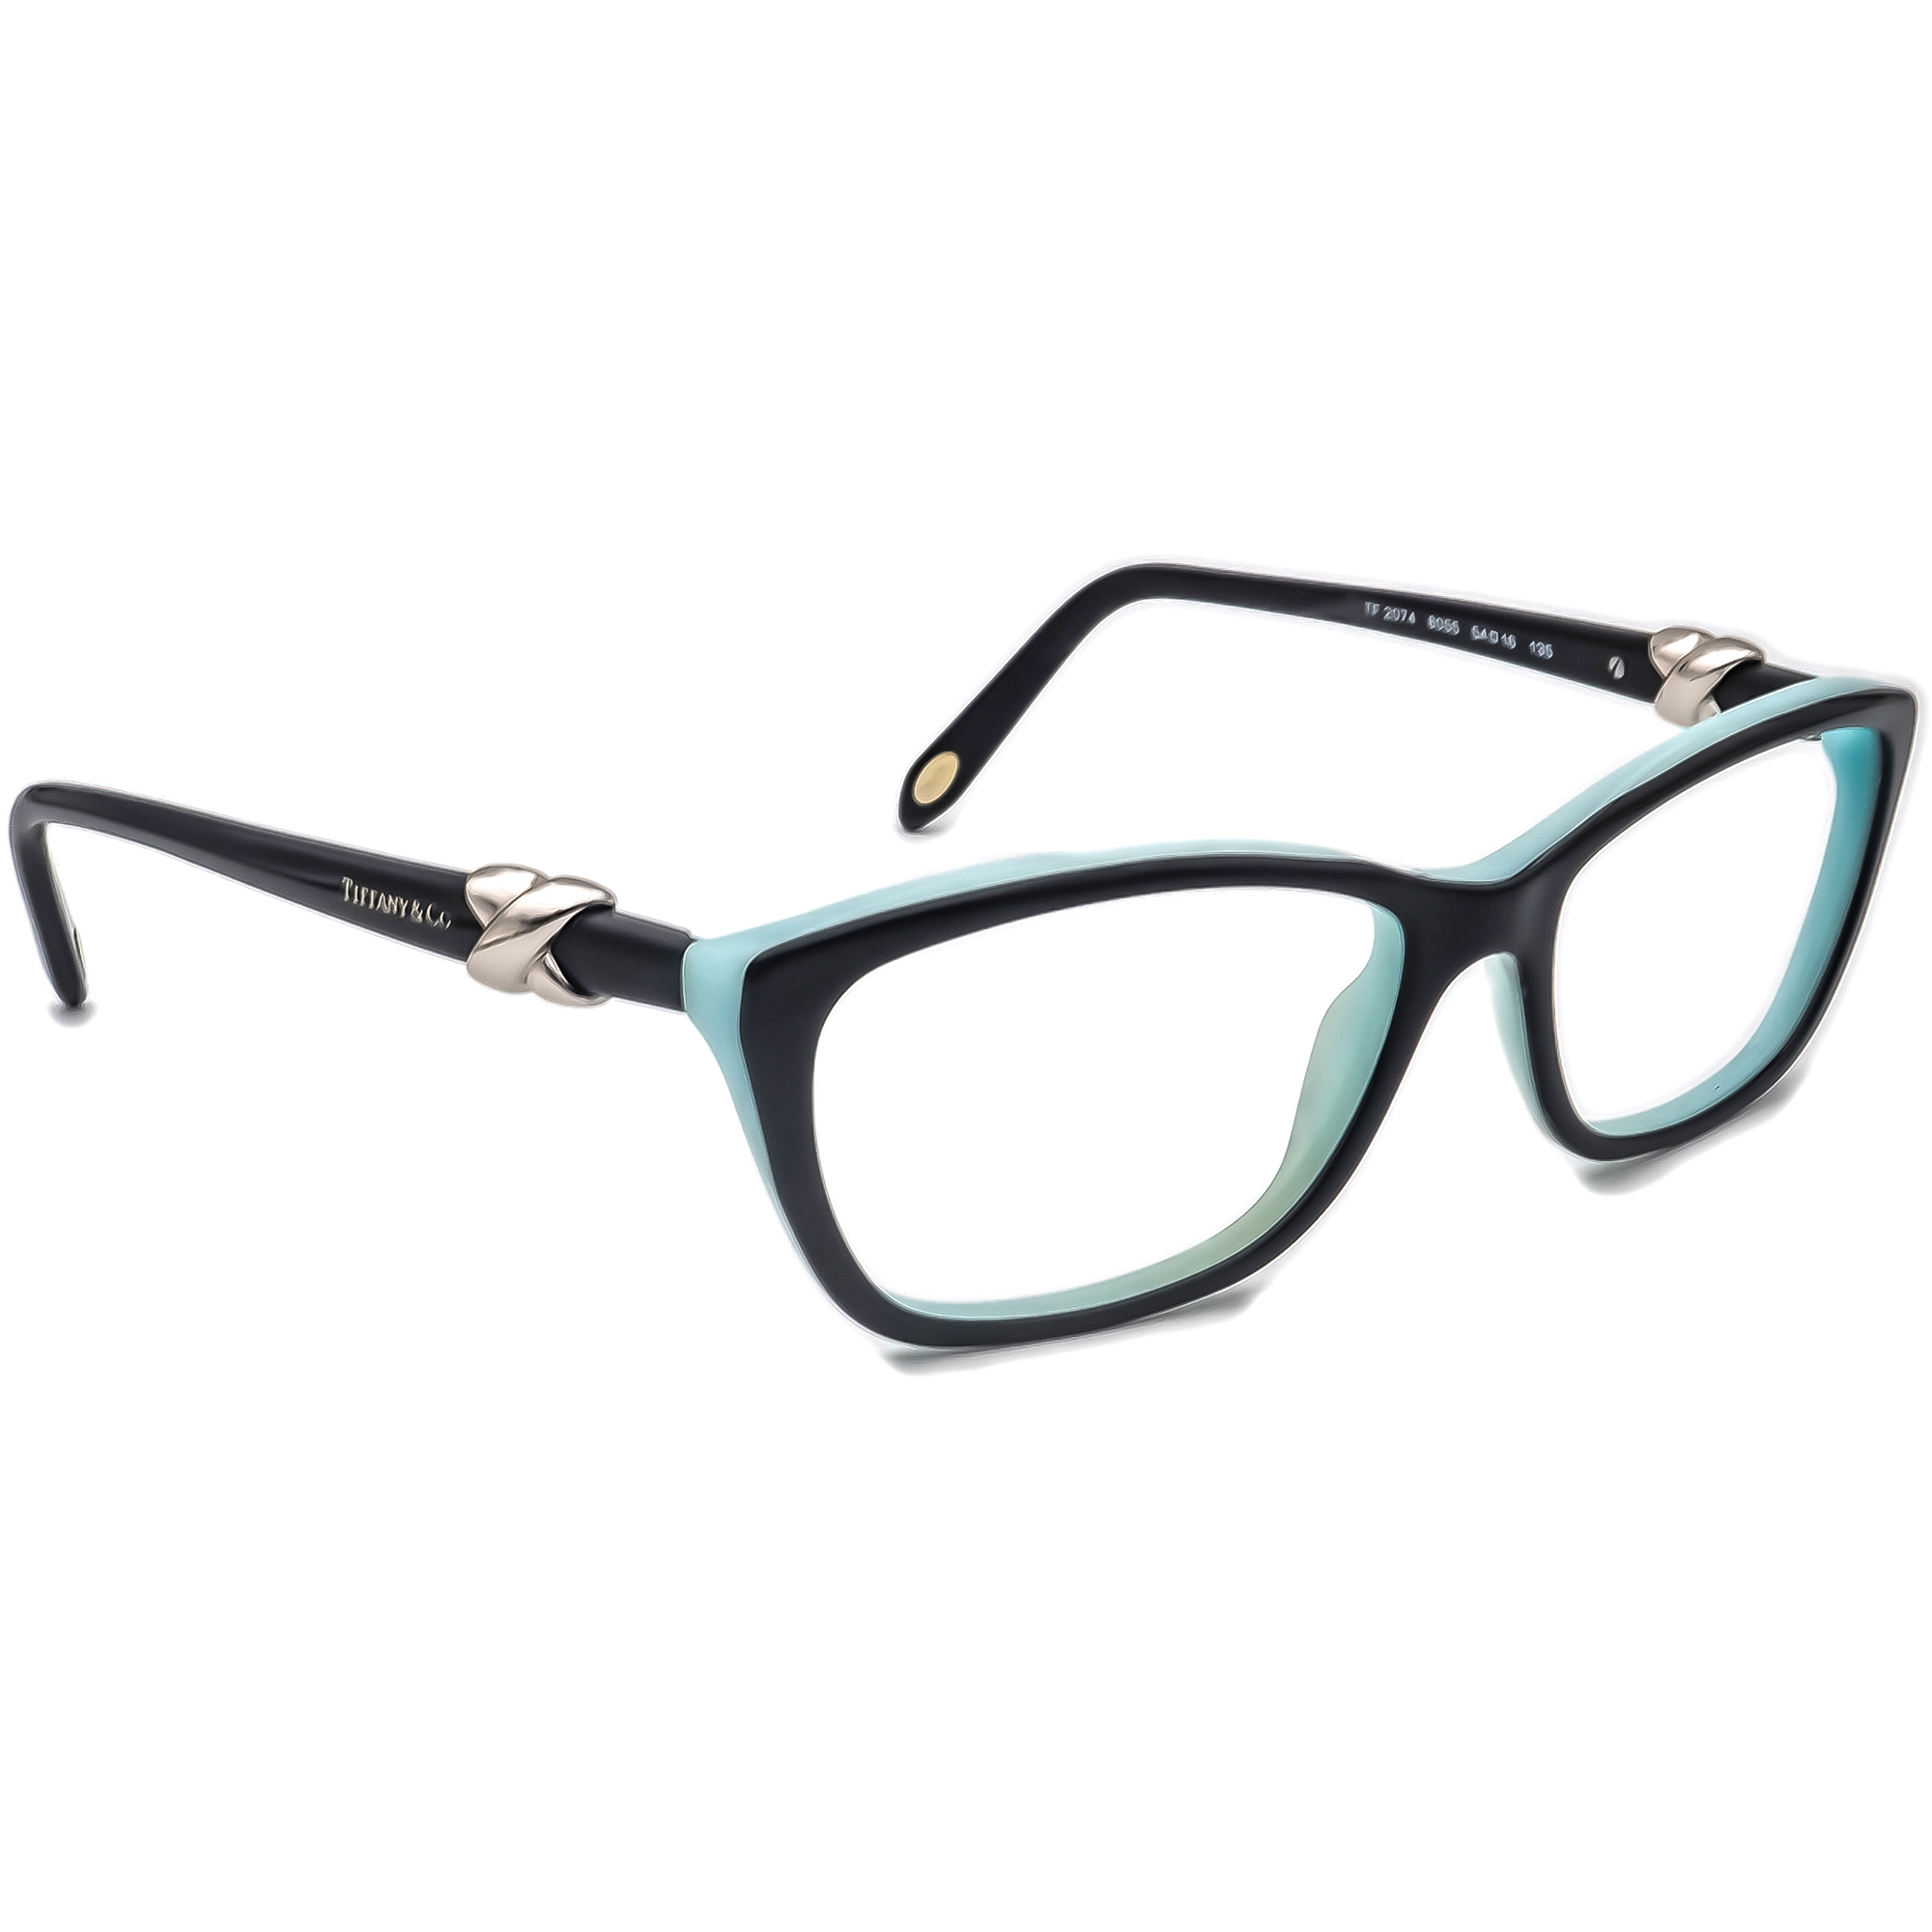 Tiffany & Co. TF 2074 8055 Eyeglasses